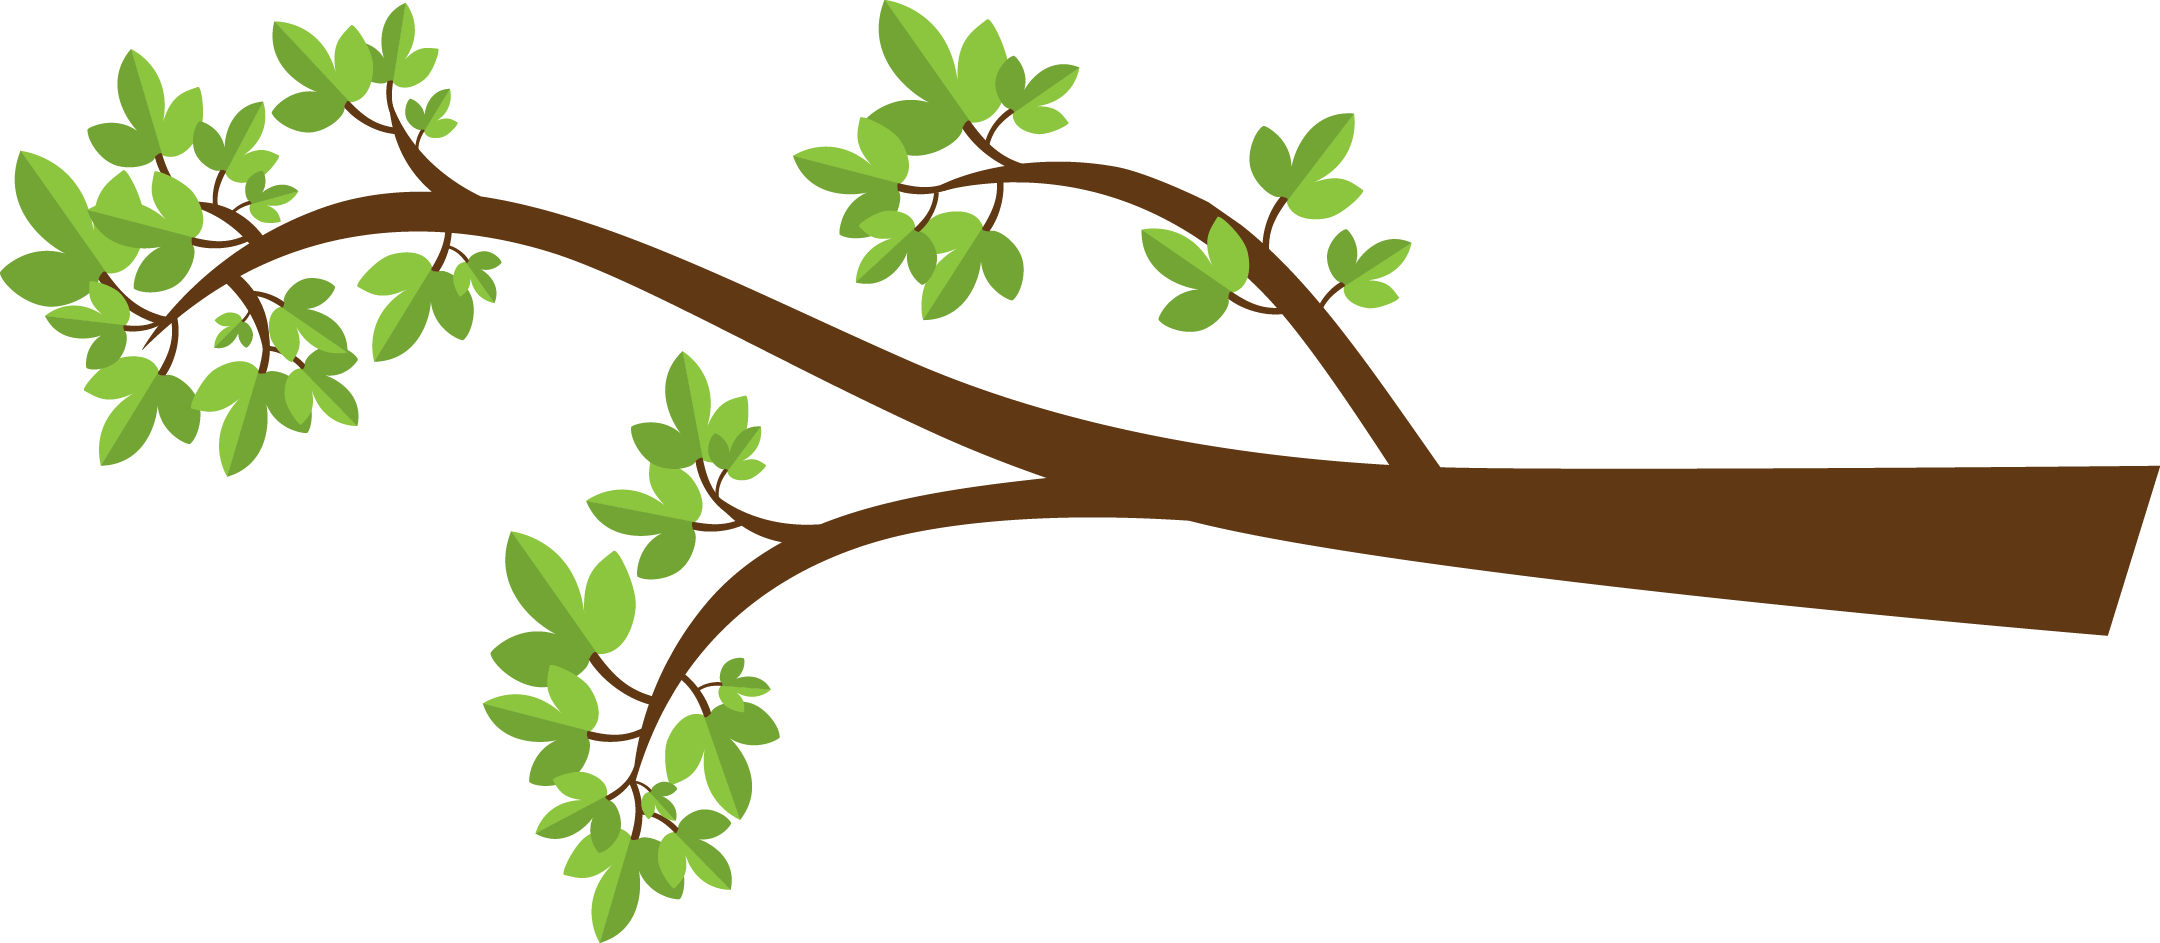 tree branch with leaves | Clipart Panda - Free Clipart Images